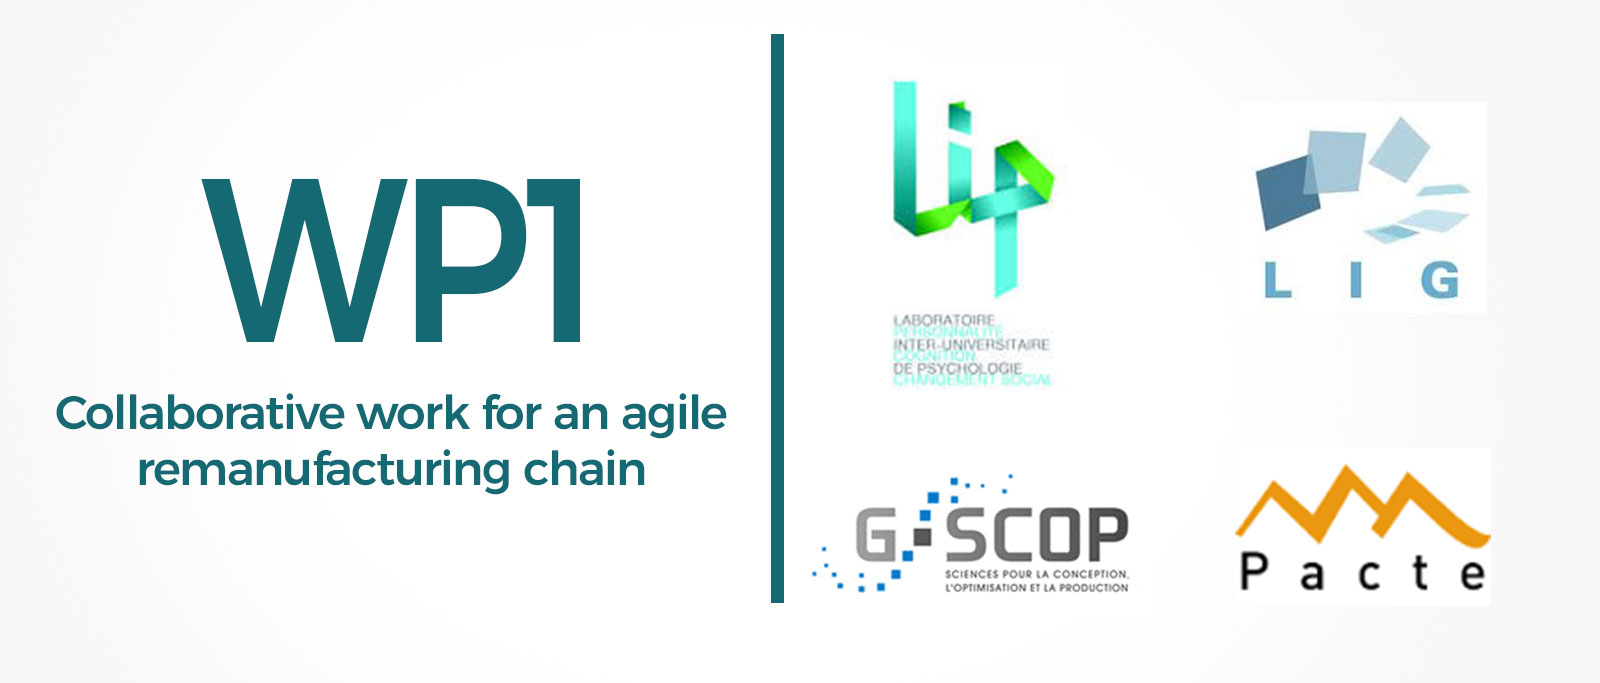 WP1: Collaborative work for an agile remanufacturing chain